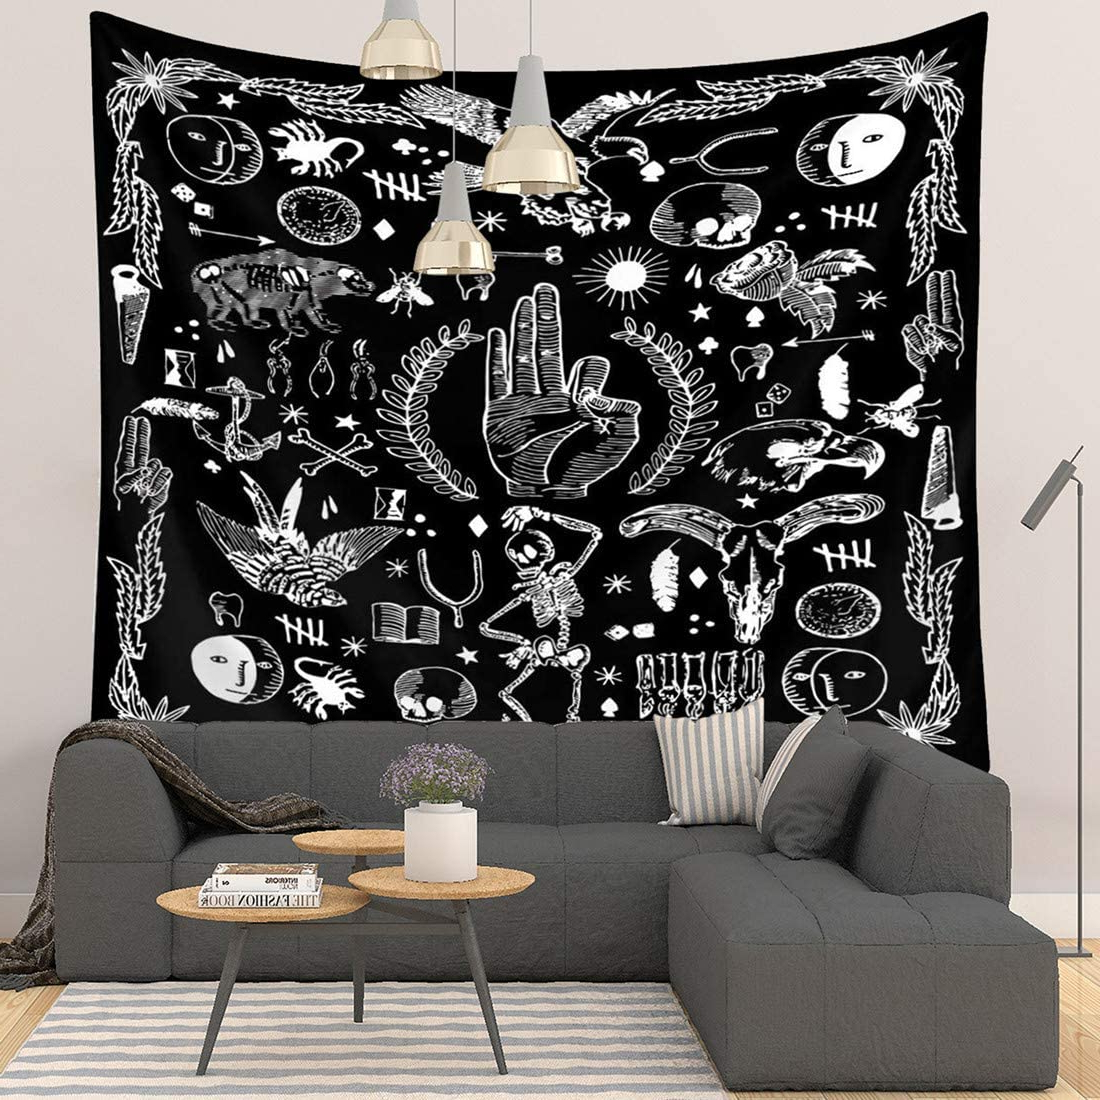 "Well Known Blended Fabric Amazing Grace Wall Hangings Regarding Black Tapestry Psychic Wall Tapestry Black And White Tapestry Wall Hanging Tarot Tapestry For Bedroom, Psychic Decor, 59""x51"" (View 17 of 20)"